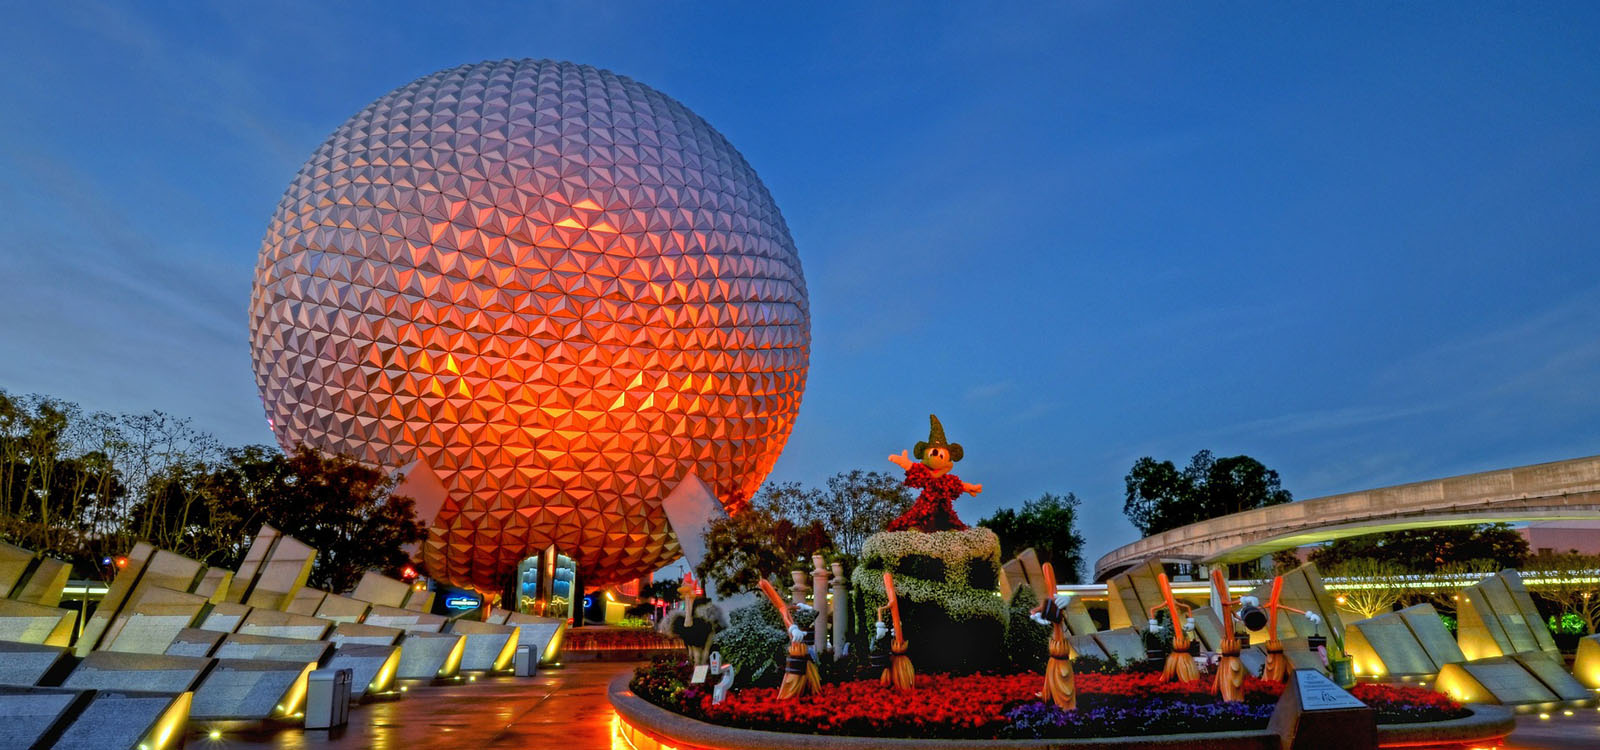 Epcot Hidden Secrets with Spaceship Earth in sunset colors.